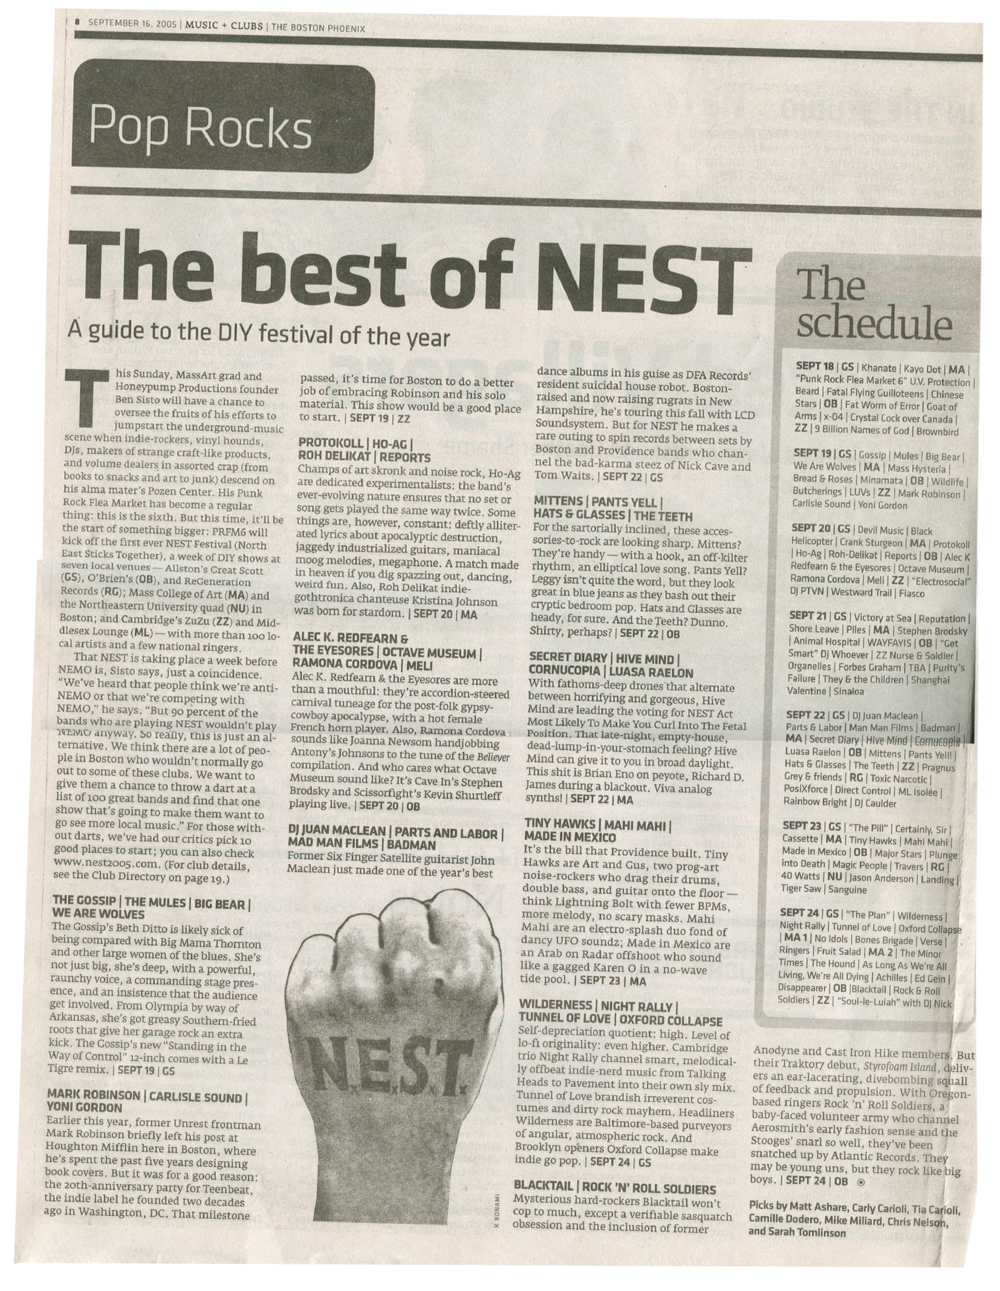 nest05_phoenix_preview_b_2056625828_o.png